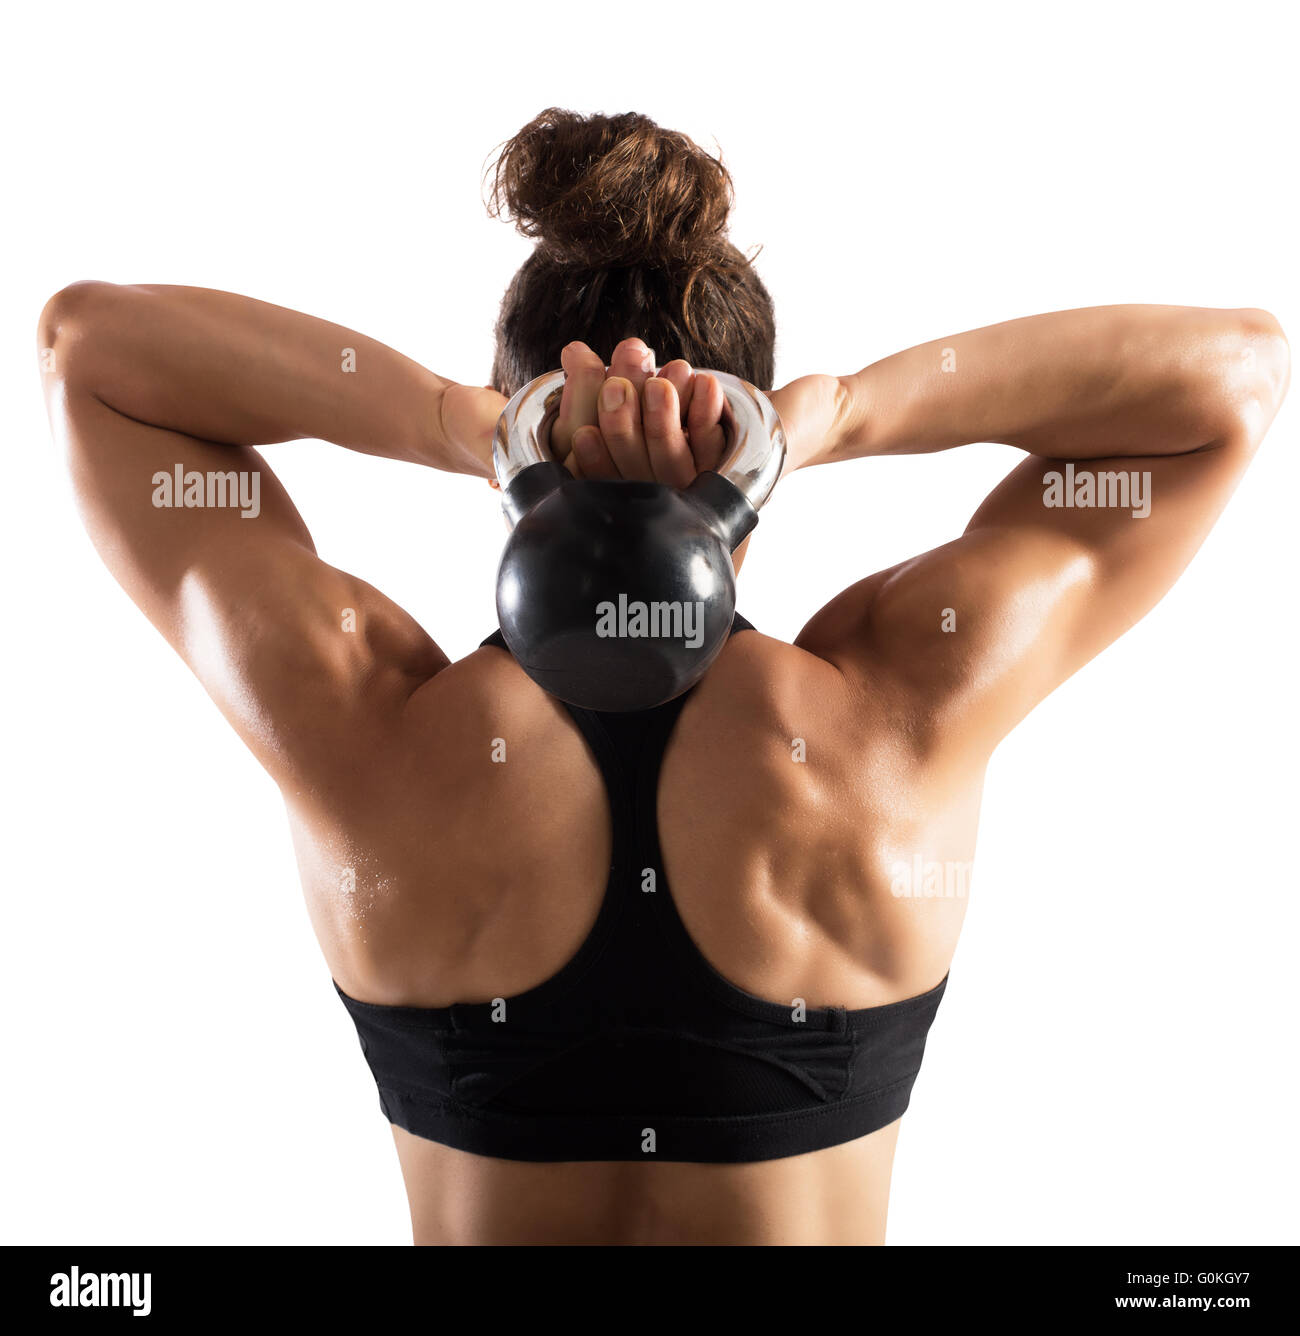 Workout with kettlebell - Stock Image